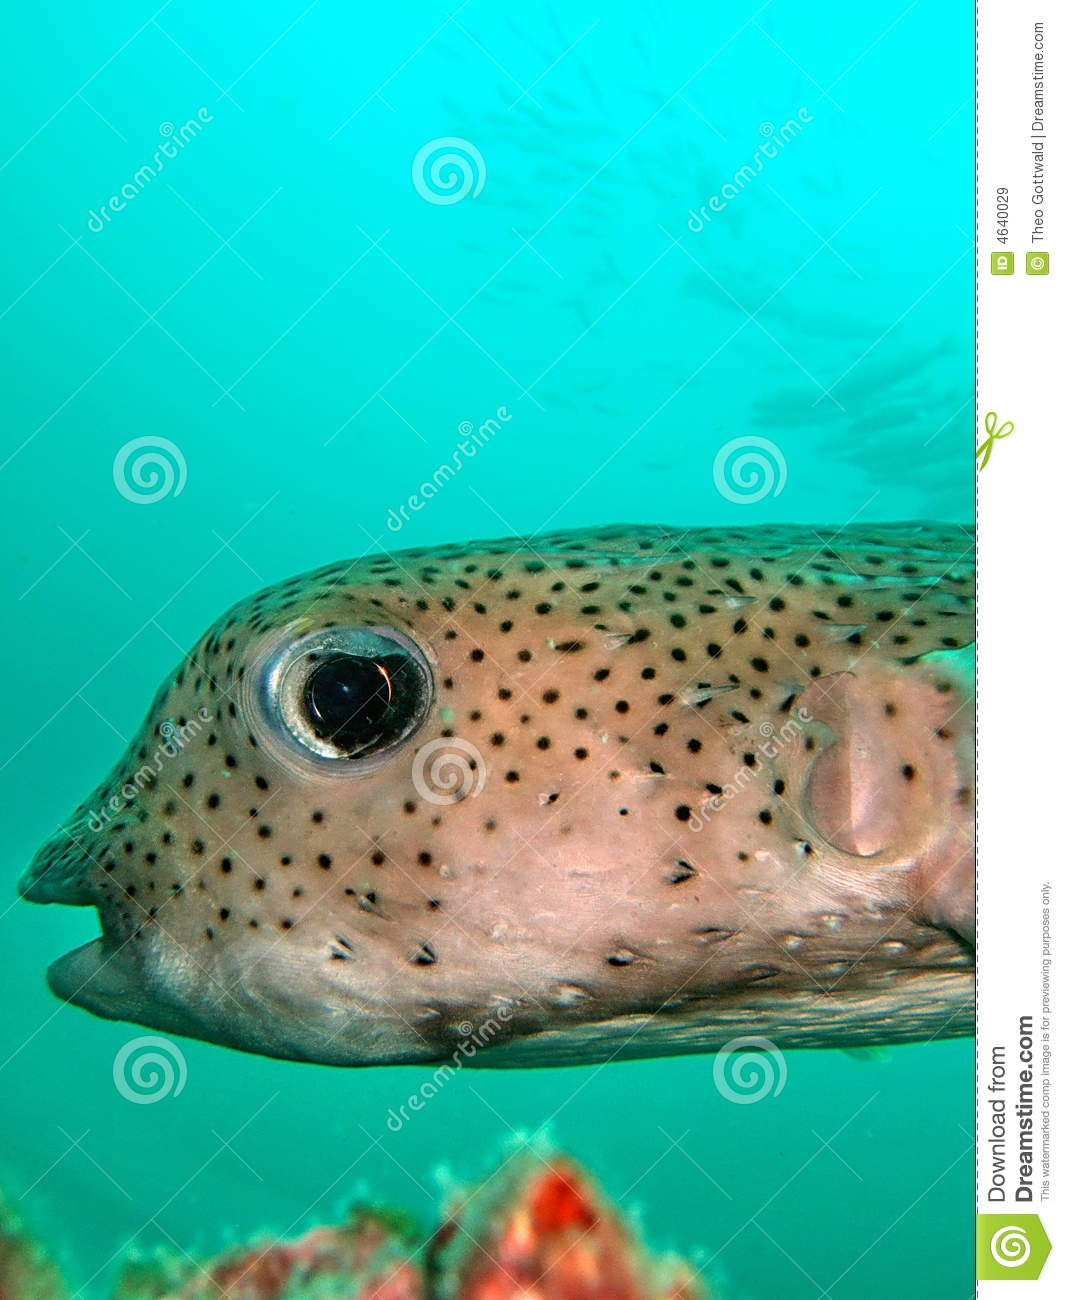 ... unusual tropical fish swimming in turquoise sea with shoal of fish in